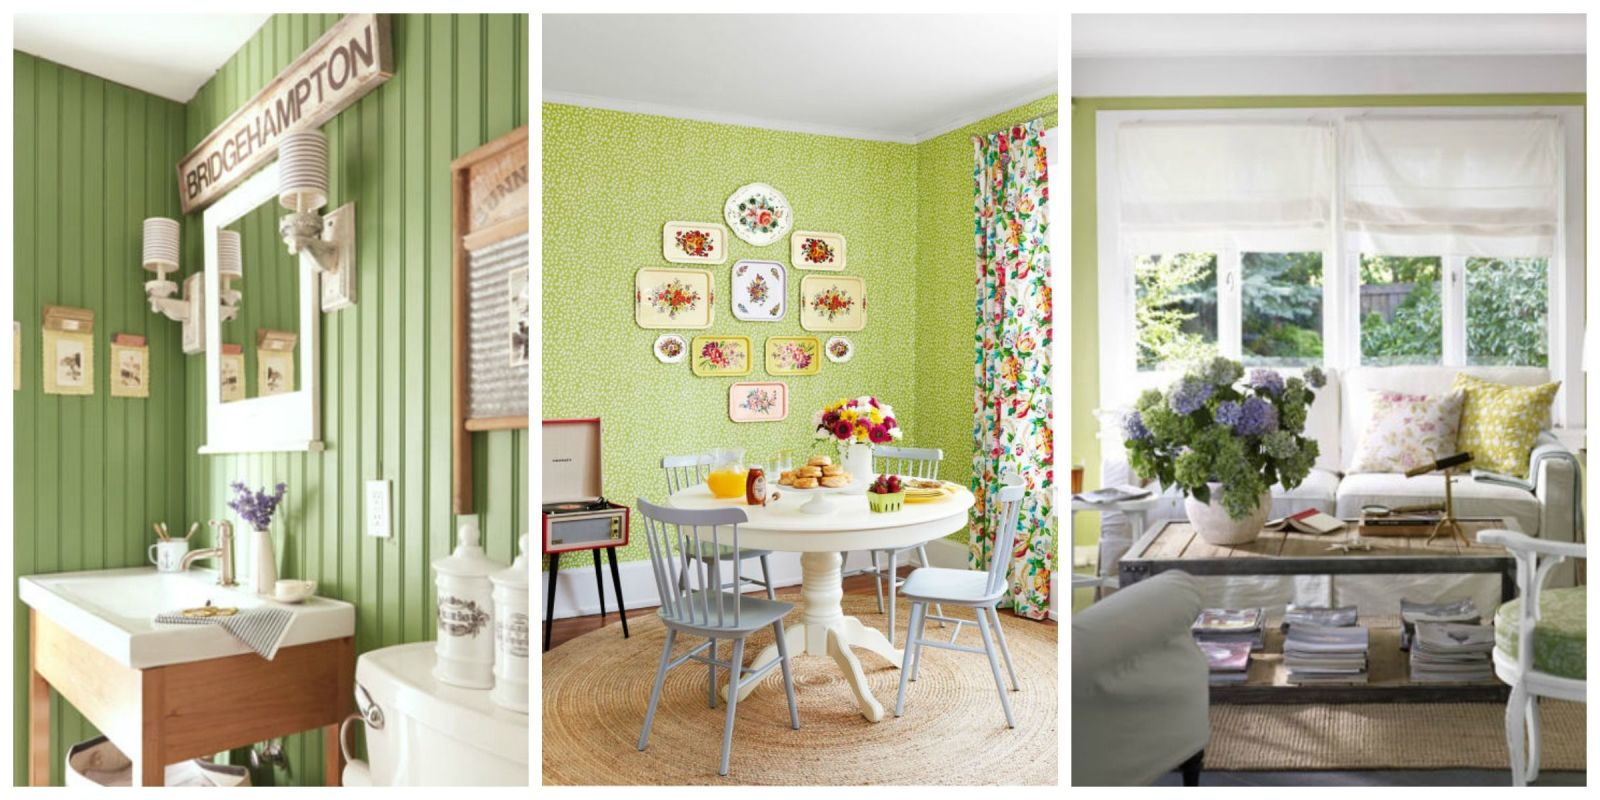 Living Room Color Decorating Ideas decorating with green ideas for rooms and home decor